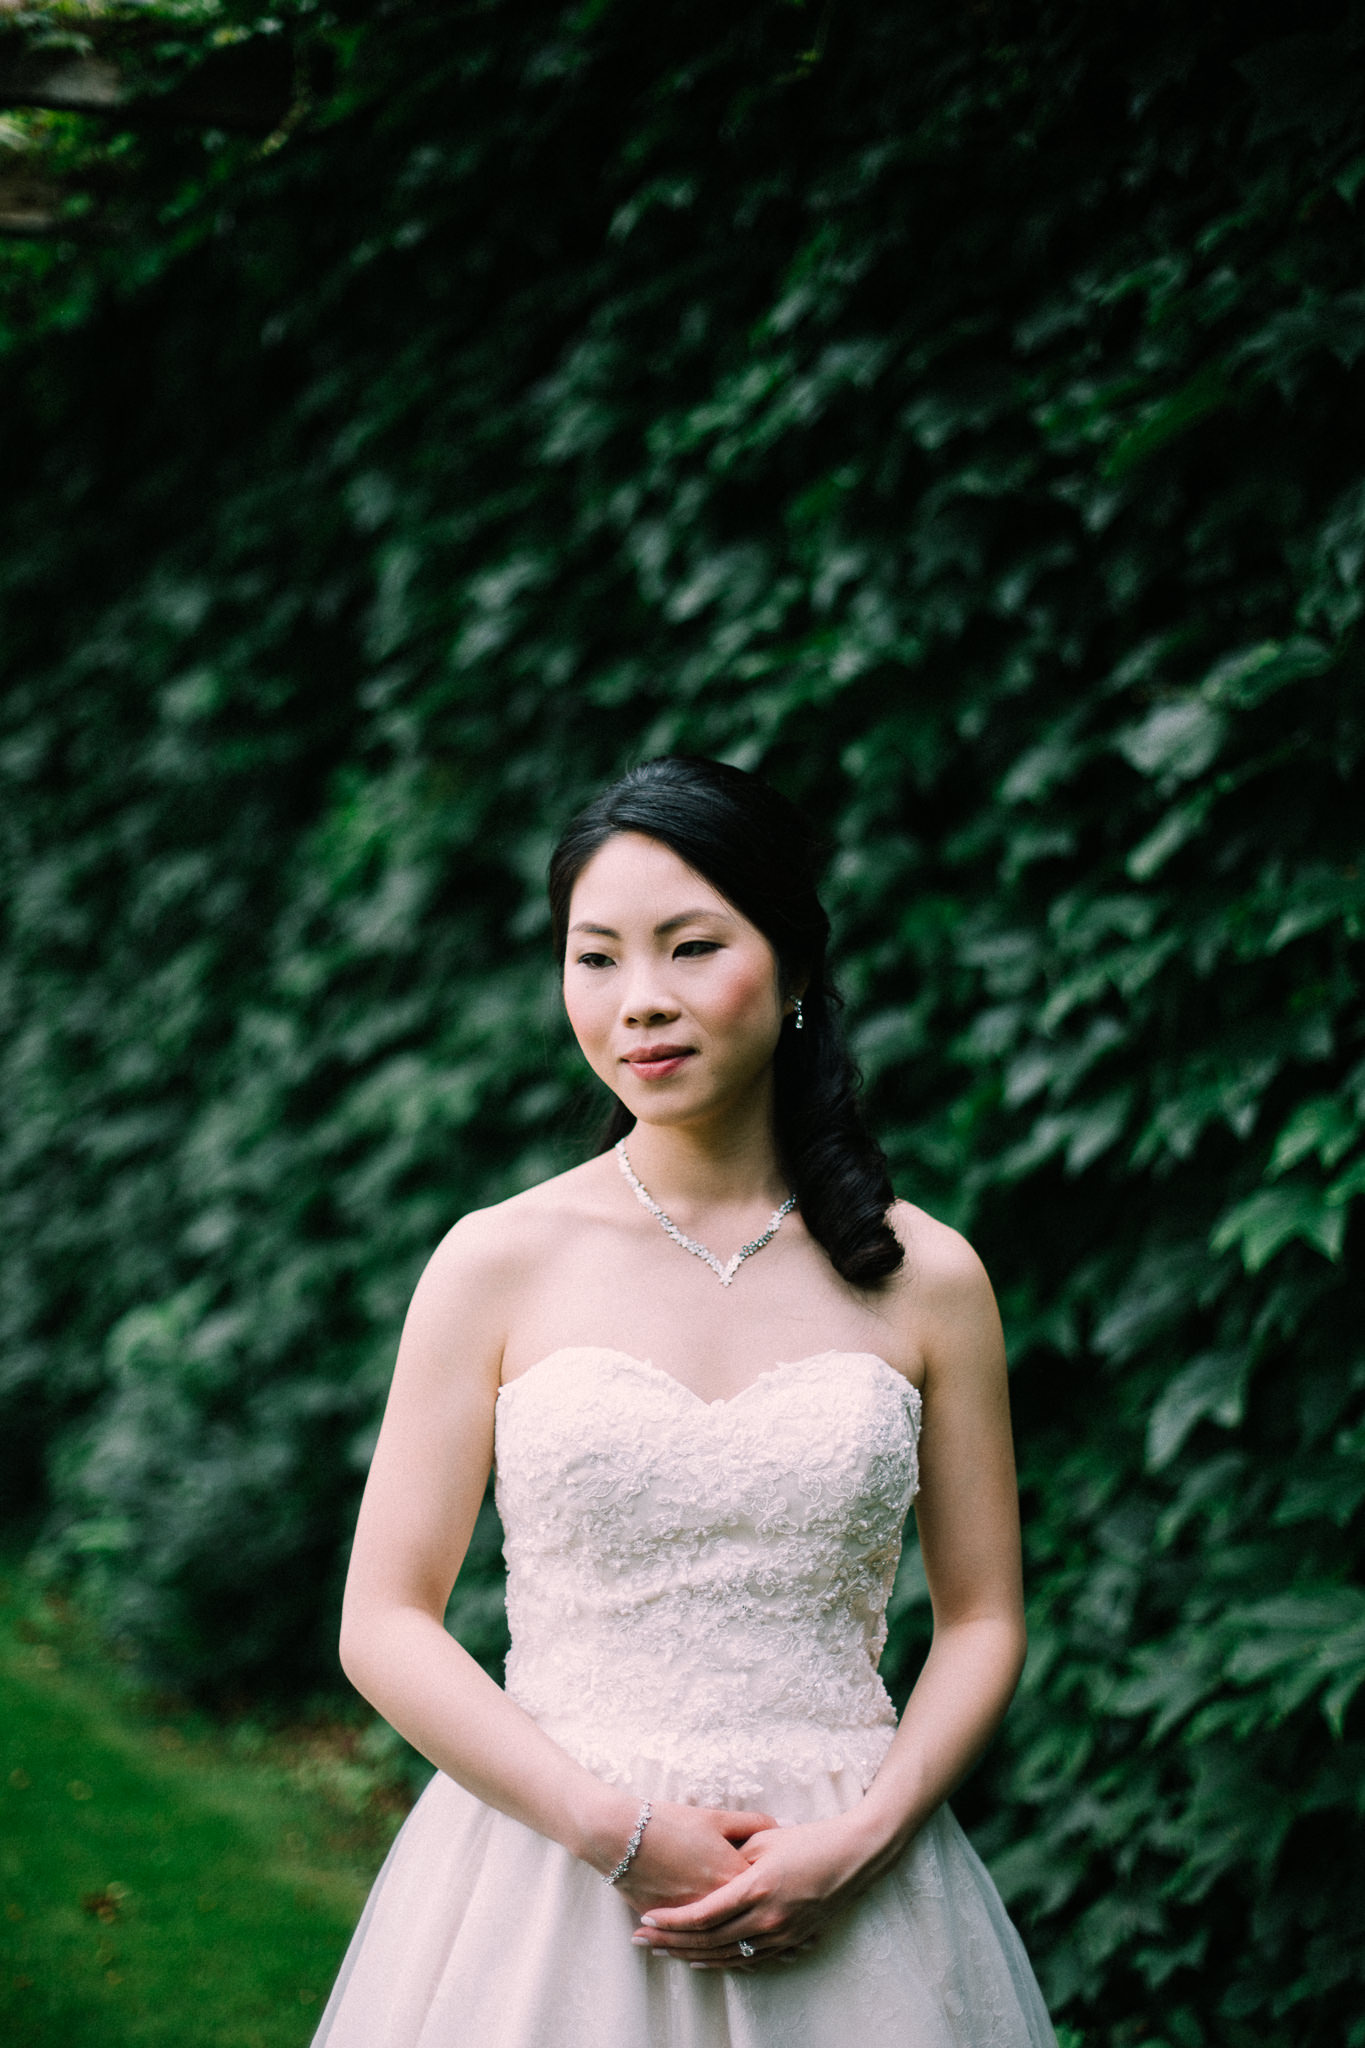 Oshawa summer wedding at Parkwood Estate by Max Wong Photo (20)